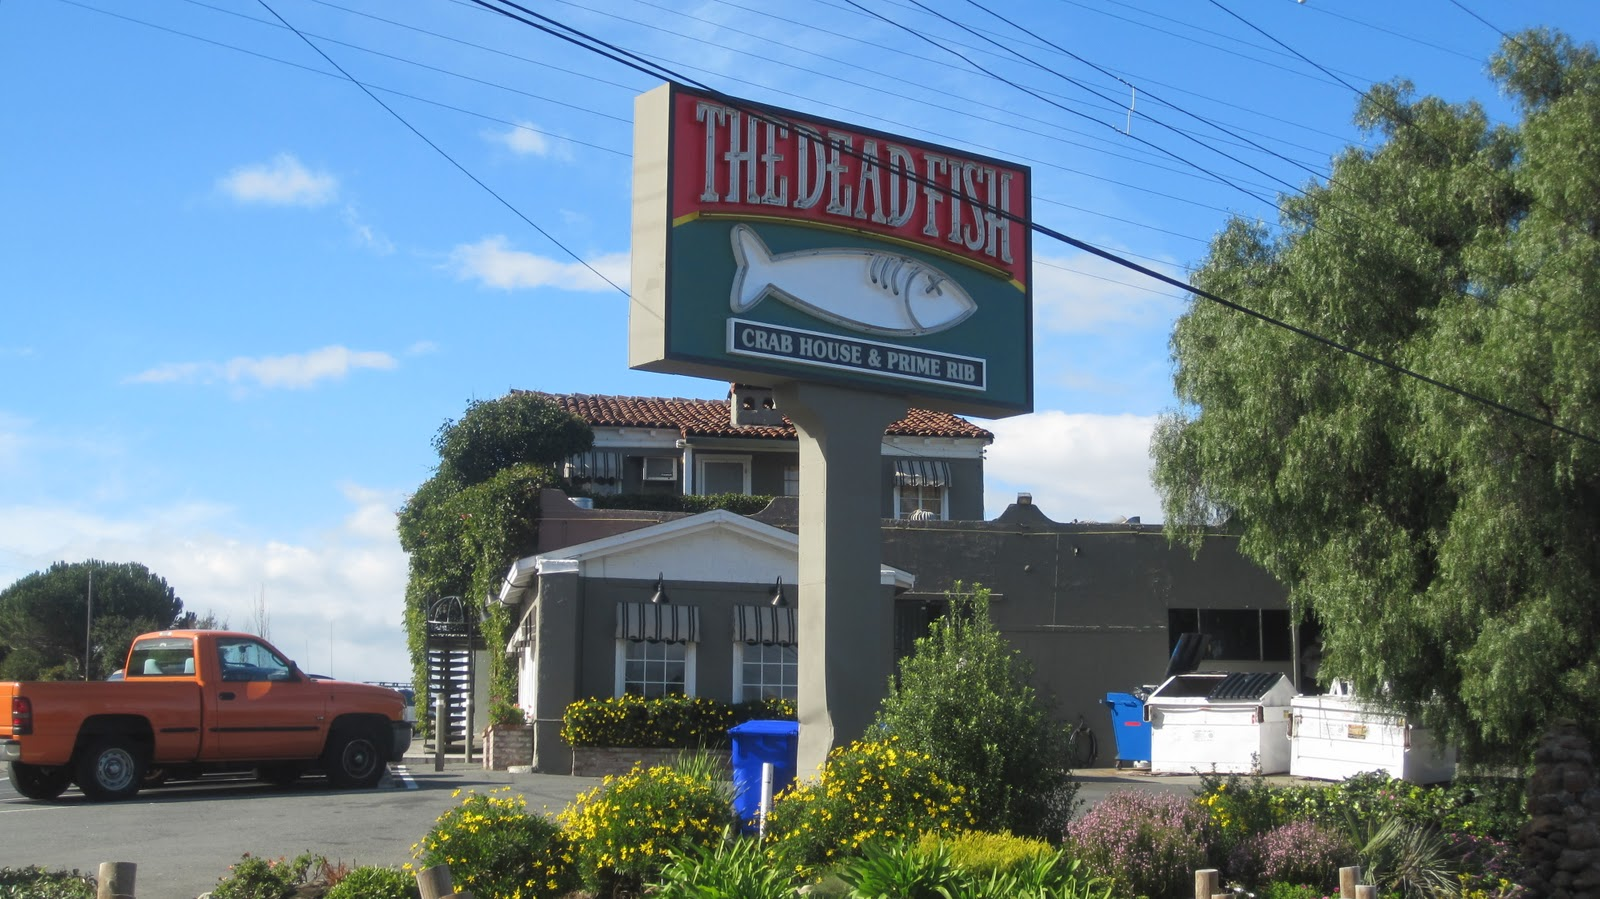 Cannundrums the dead fish crab house and prime rib for Dead fish restaurant